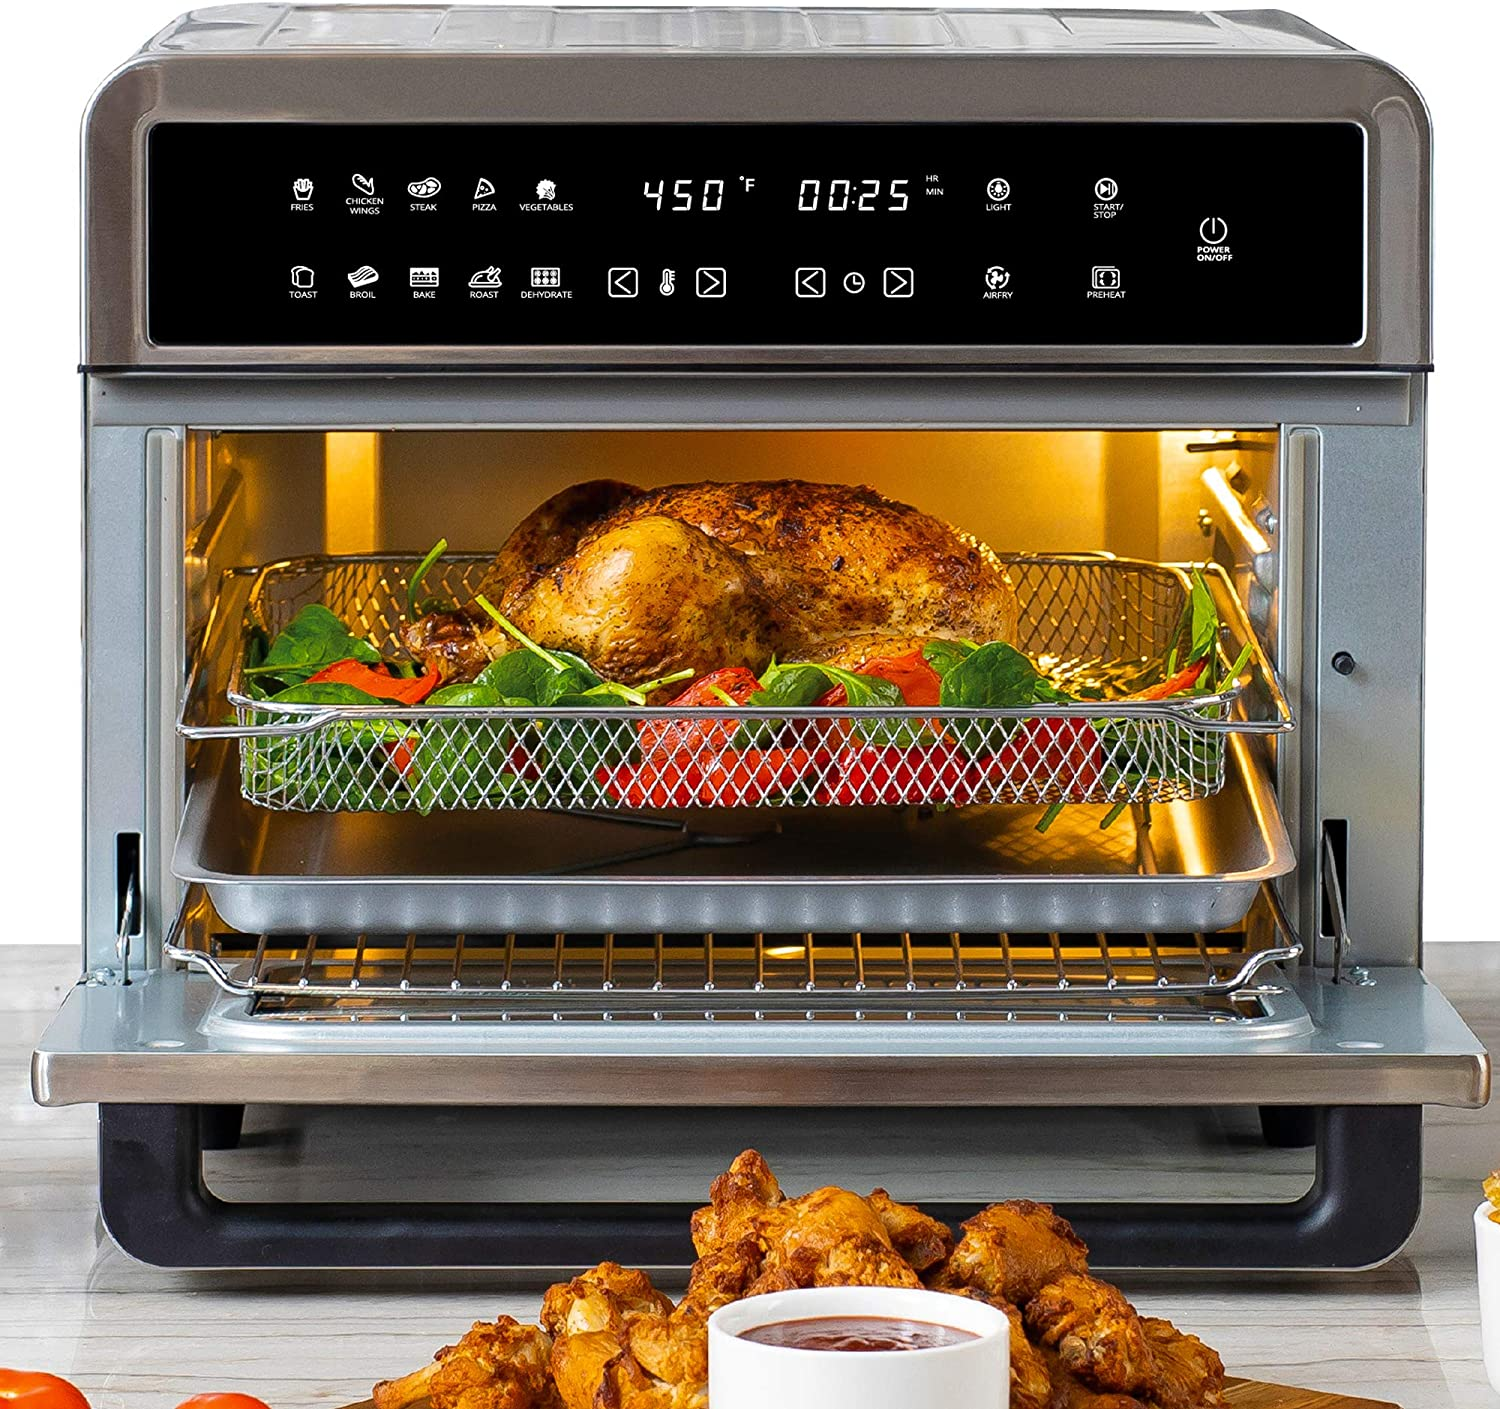 Aria Air Fryers ATO-898 Toaster Oven Air Fryer